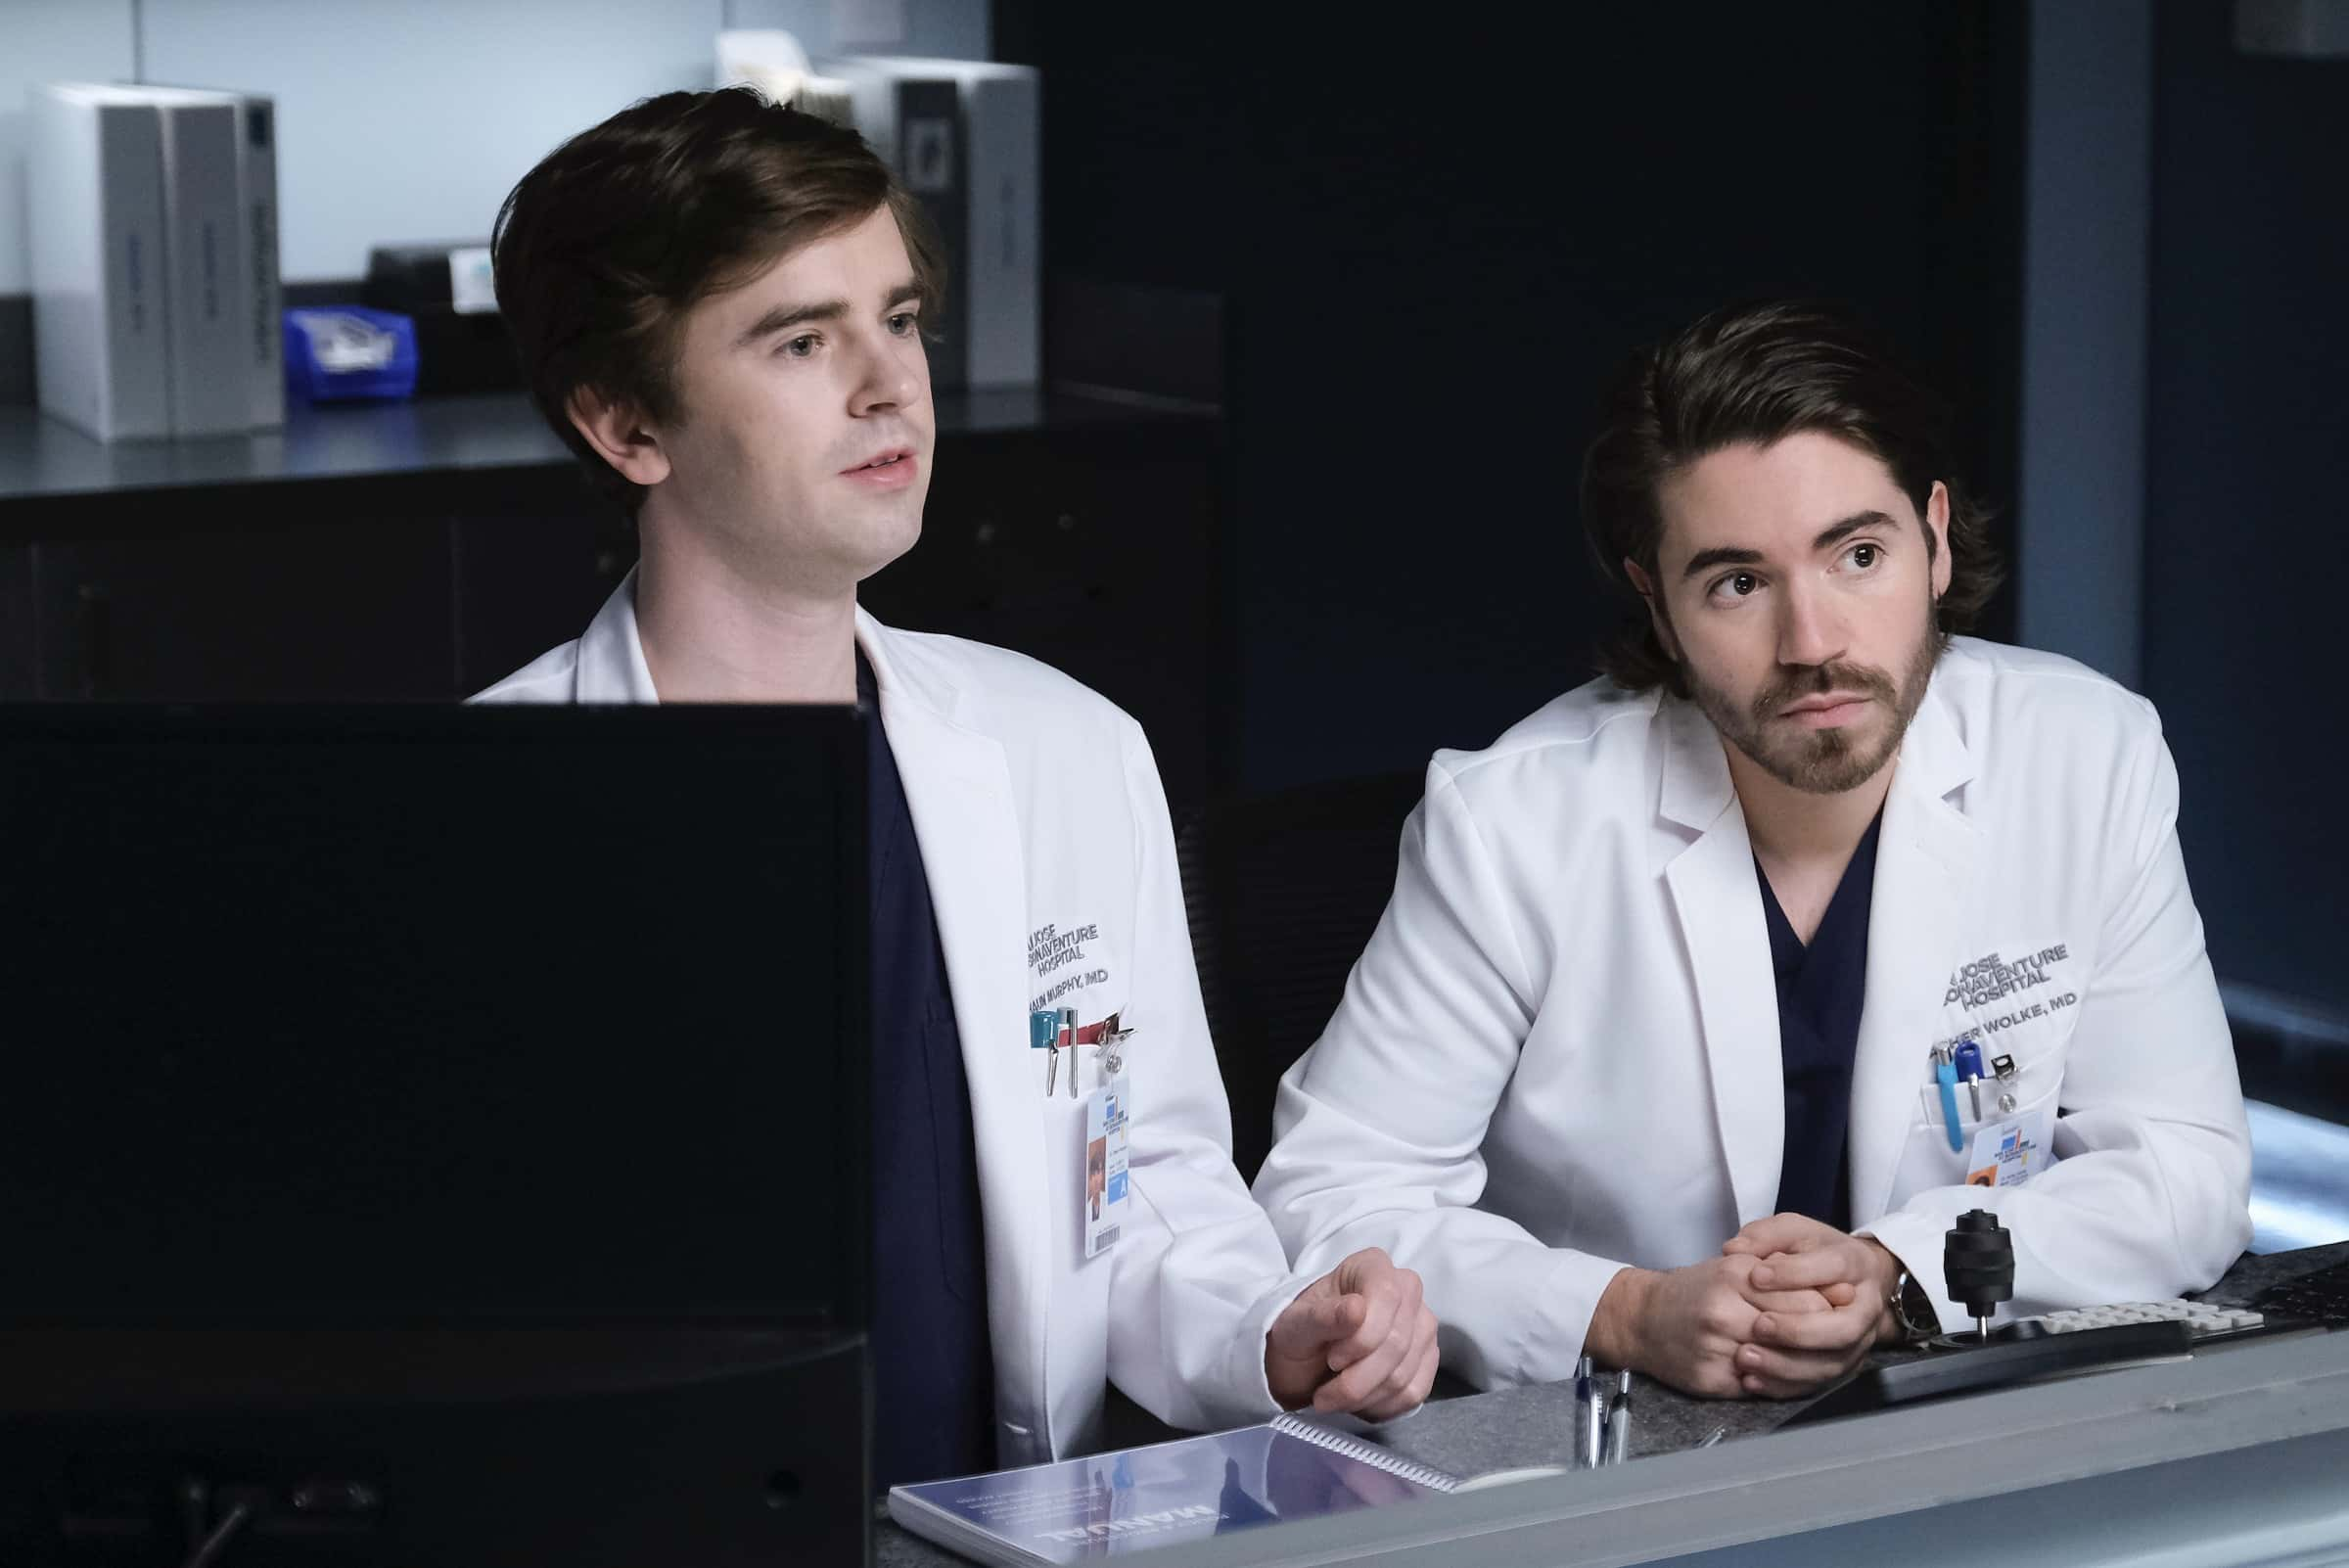 "THE GOOD DOCTOR Season 4 Episode 13 - ""Spilled Milk"" – Claire is blindsided when her absentee father shows up at her door. Meanwhile, Shaun feels disconnected from Lea, causing tension in their relationship on an all-new episode of ""The Good Doctor,"" MONDAY, MARCH 29 (10:00-11:00 p.m. EDT), on ABC. (ABC/Jeff Weddell) FREDDIE HIGHMORE, NOAH GALVIN"